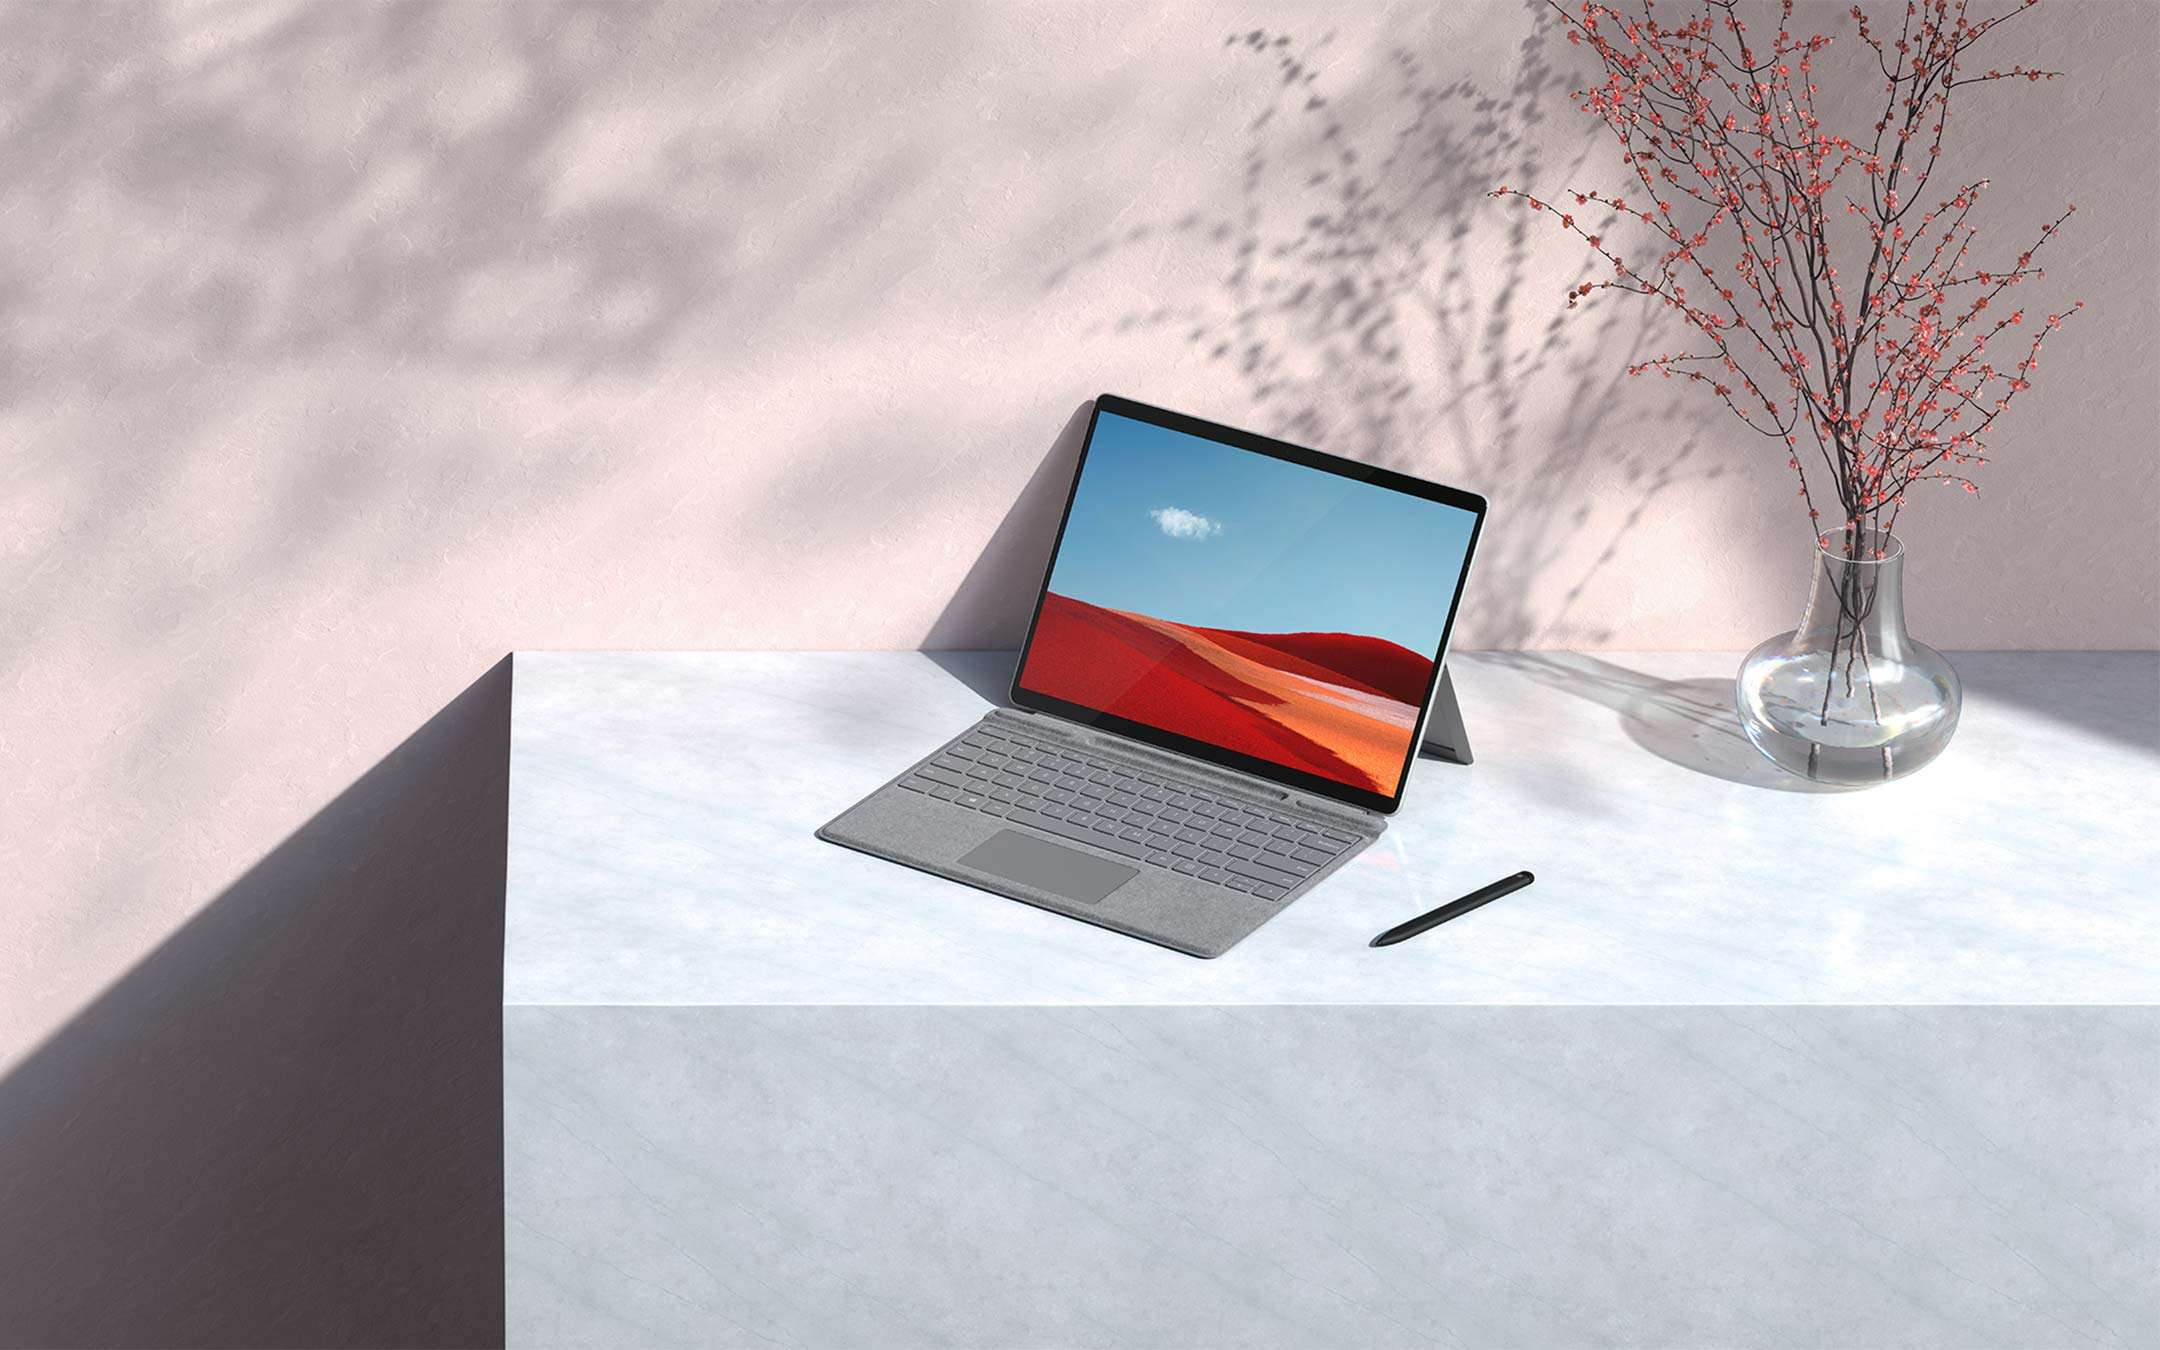 The new Surface Pro X arrives today in Italy